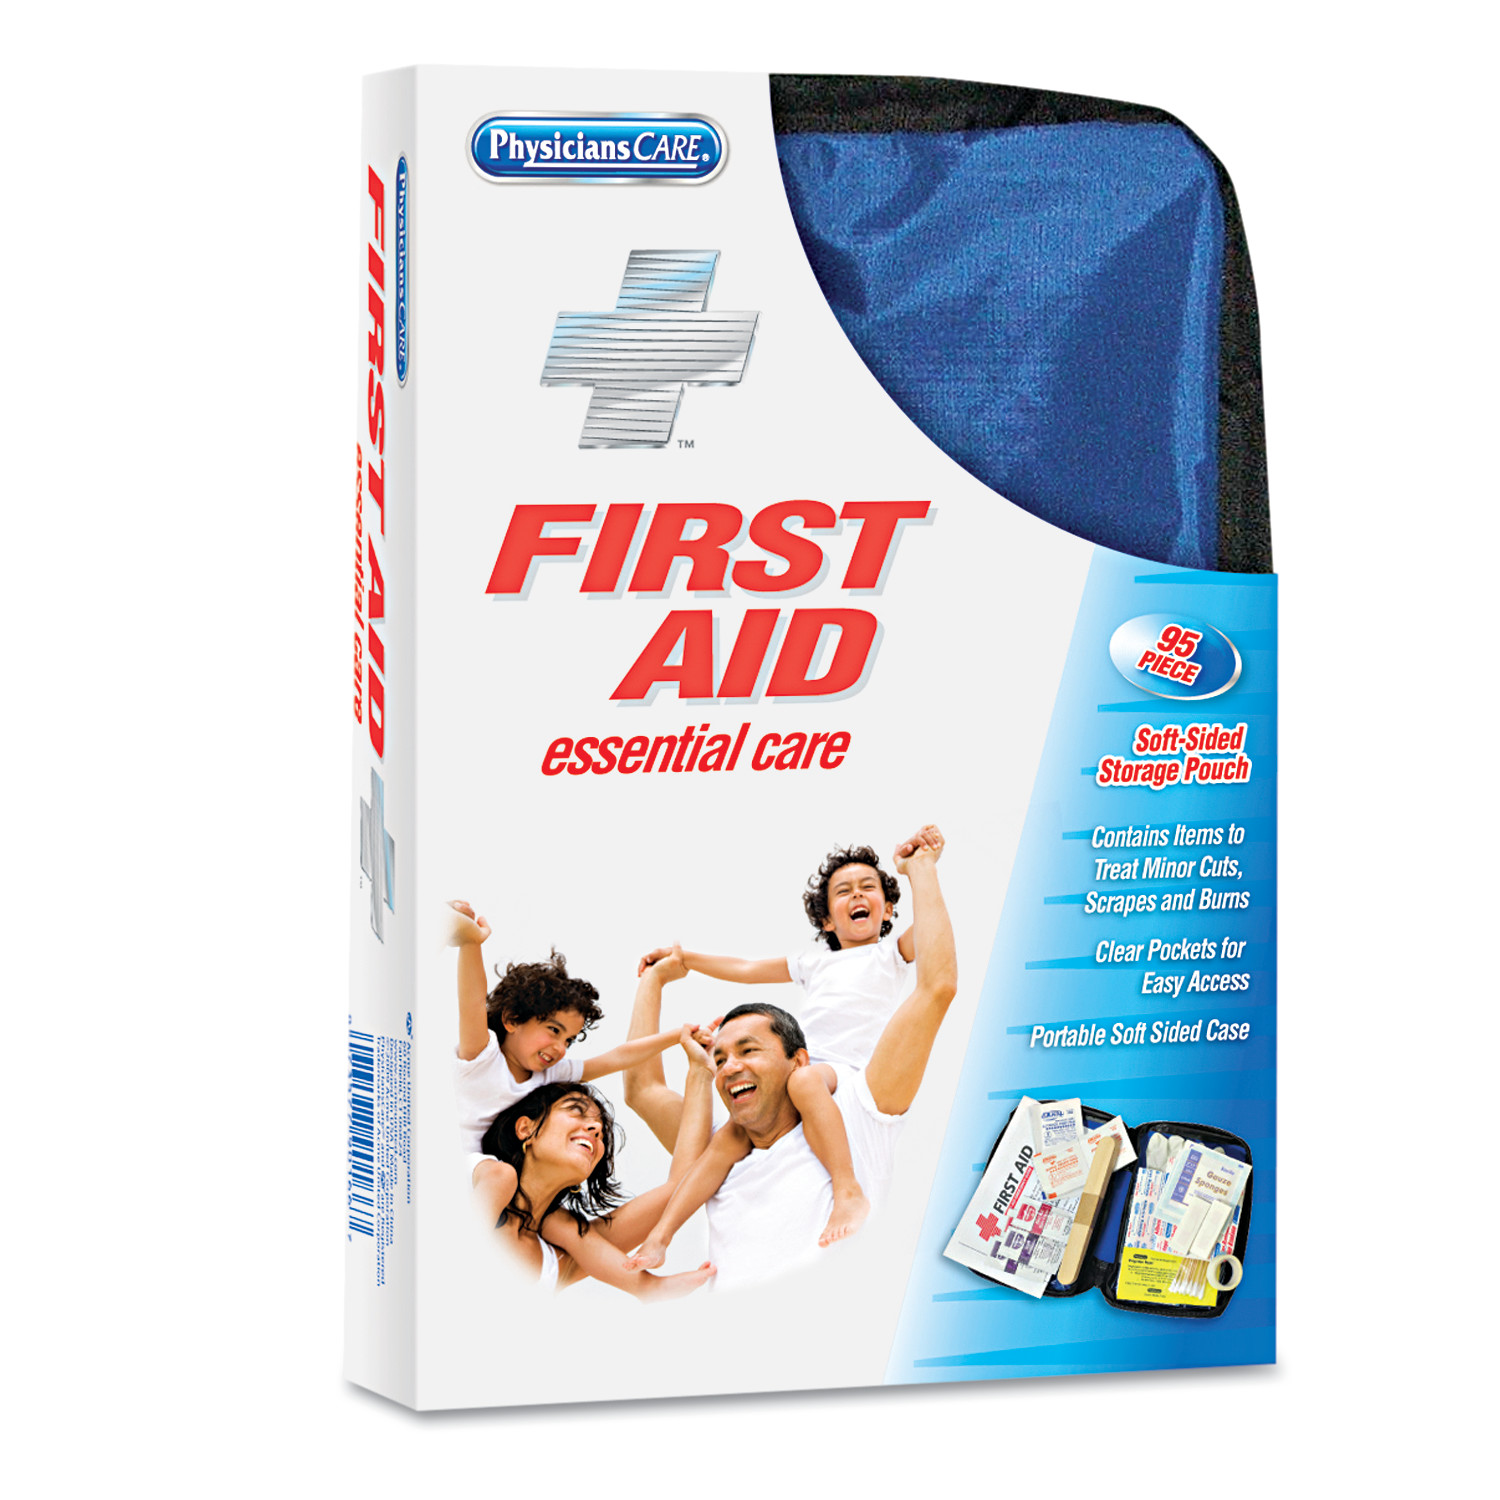 PhysiciansCare by First Aid Only Soft-Sided First Aid Kit for up to 10 People, 95 Pieces Kit by ACME UNITED CORPORATION